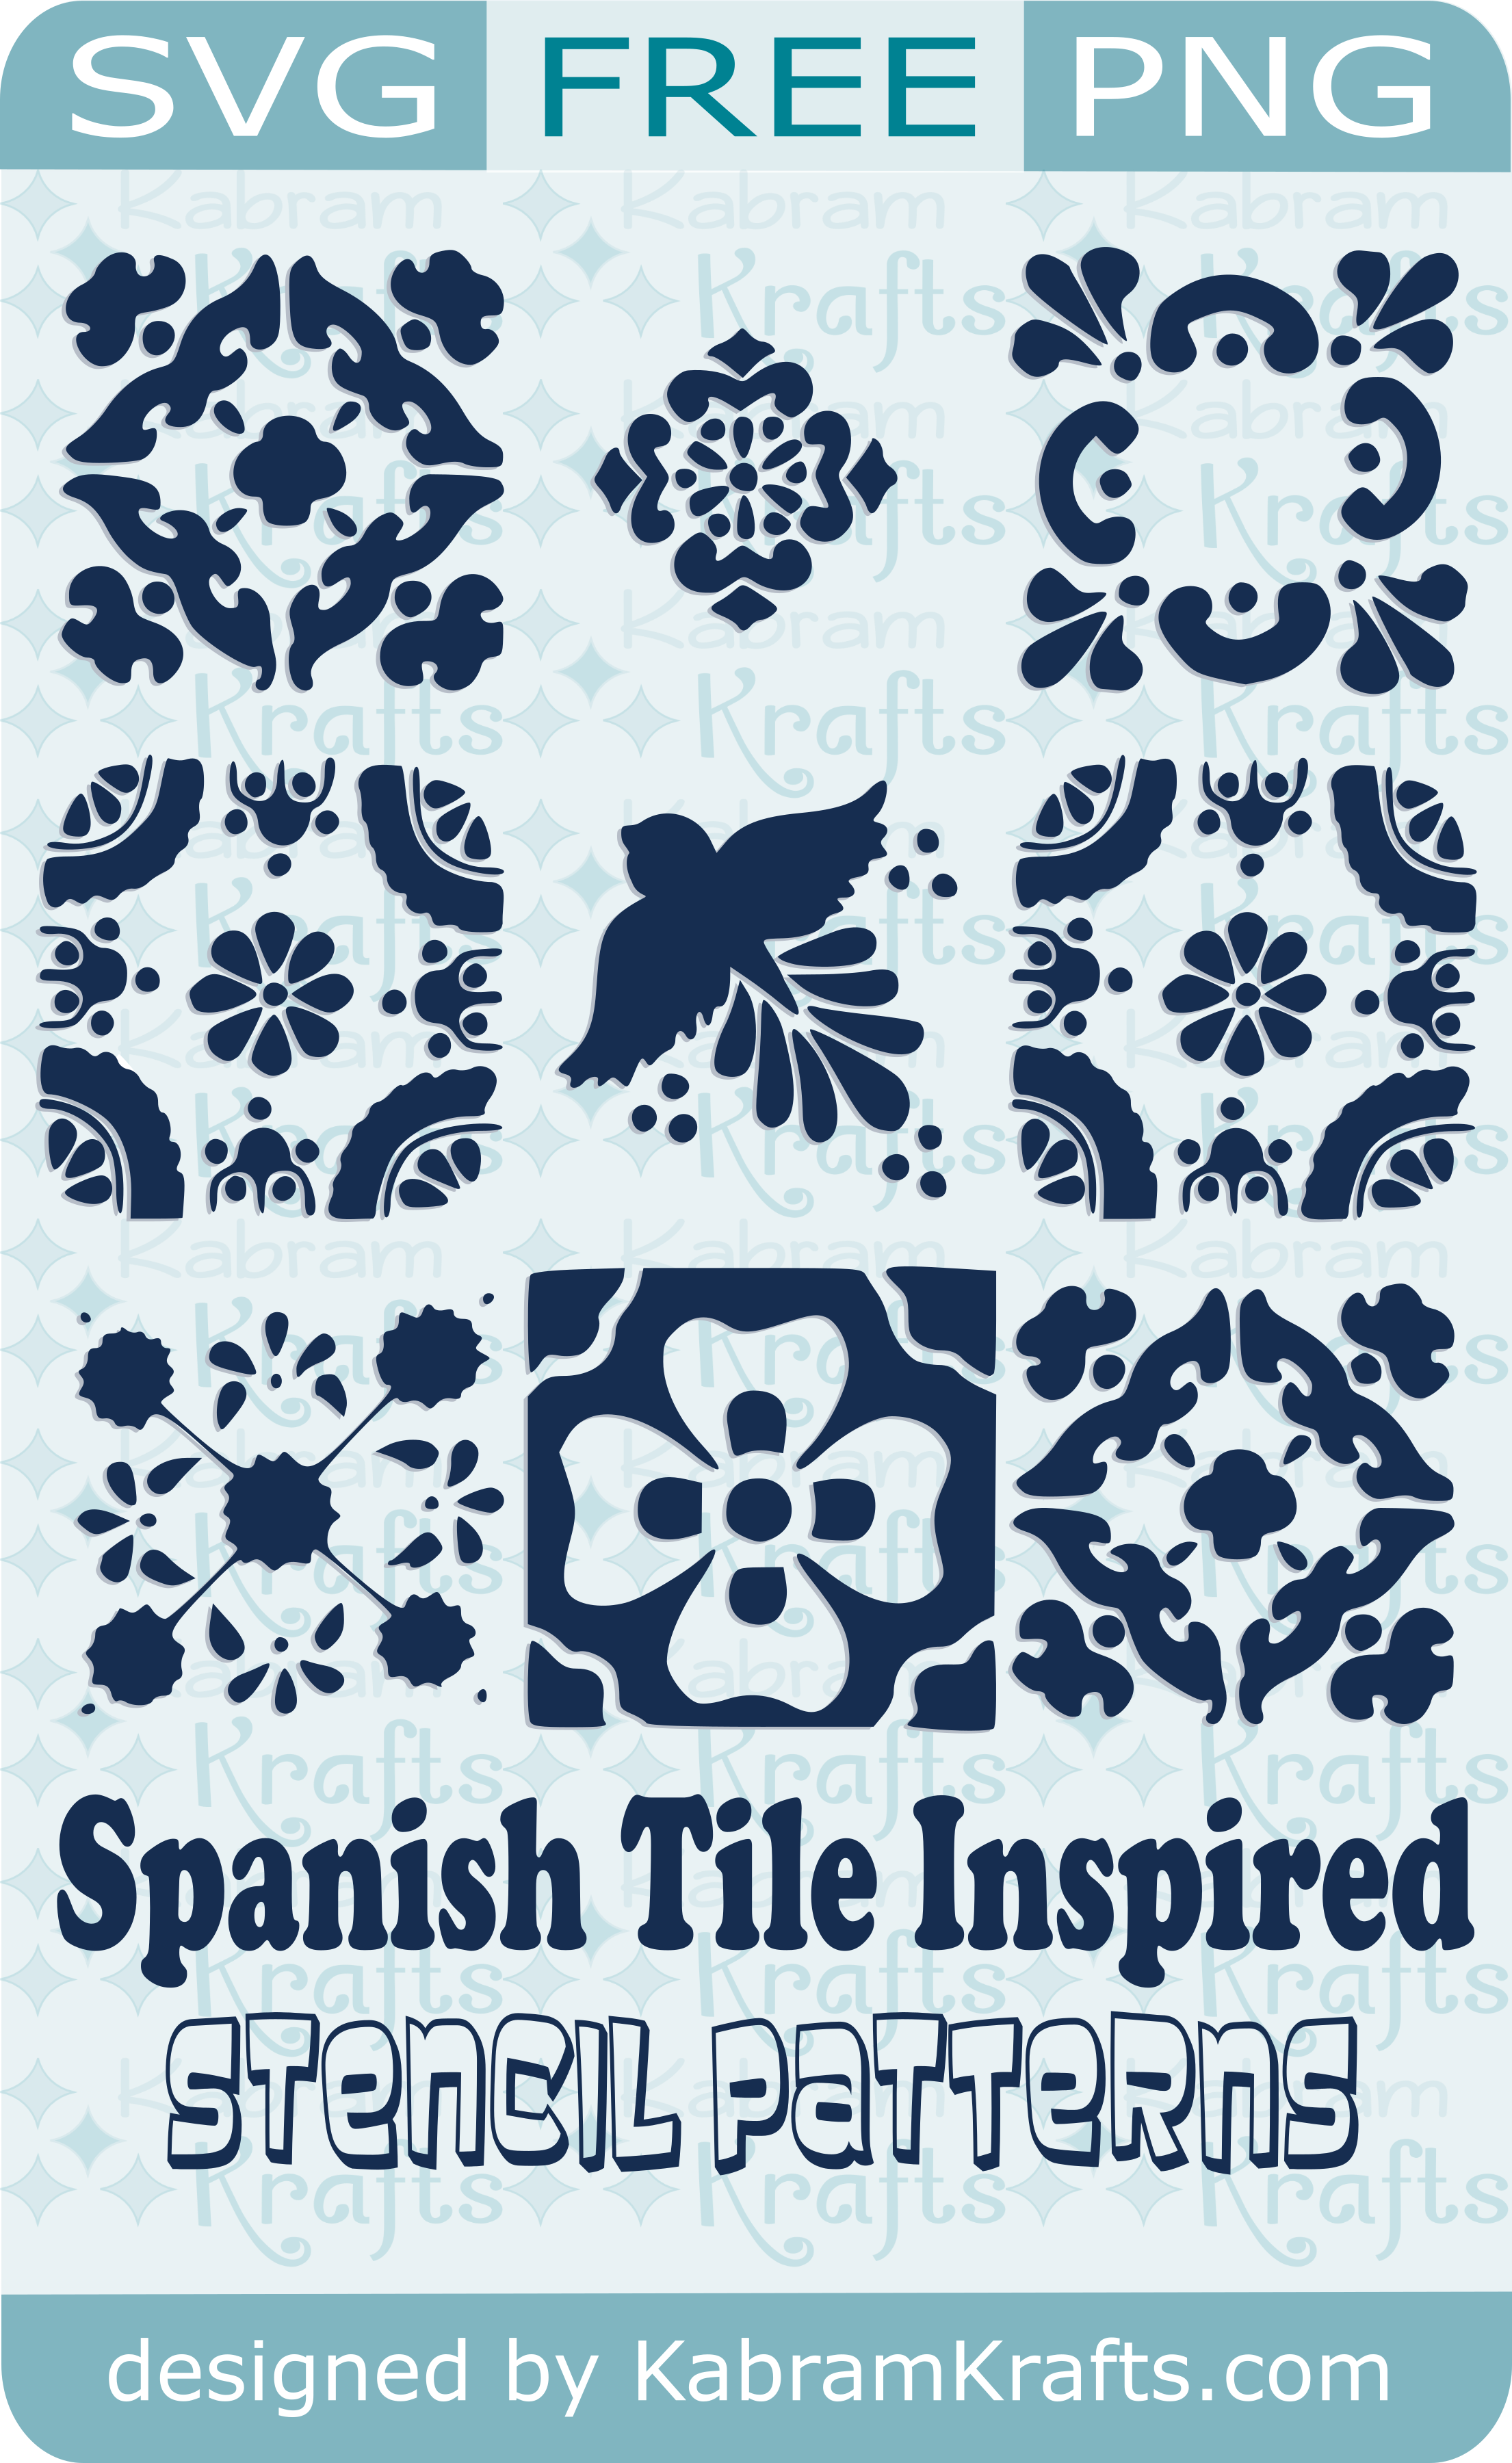 national tile day archives